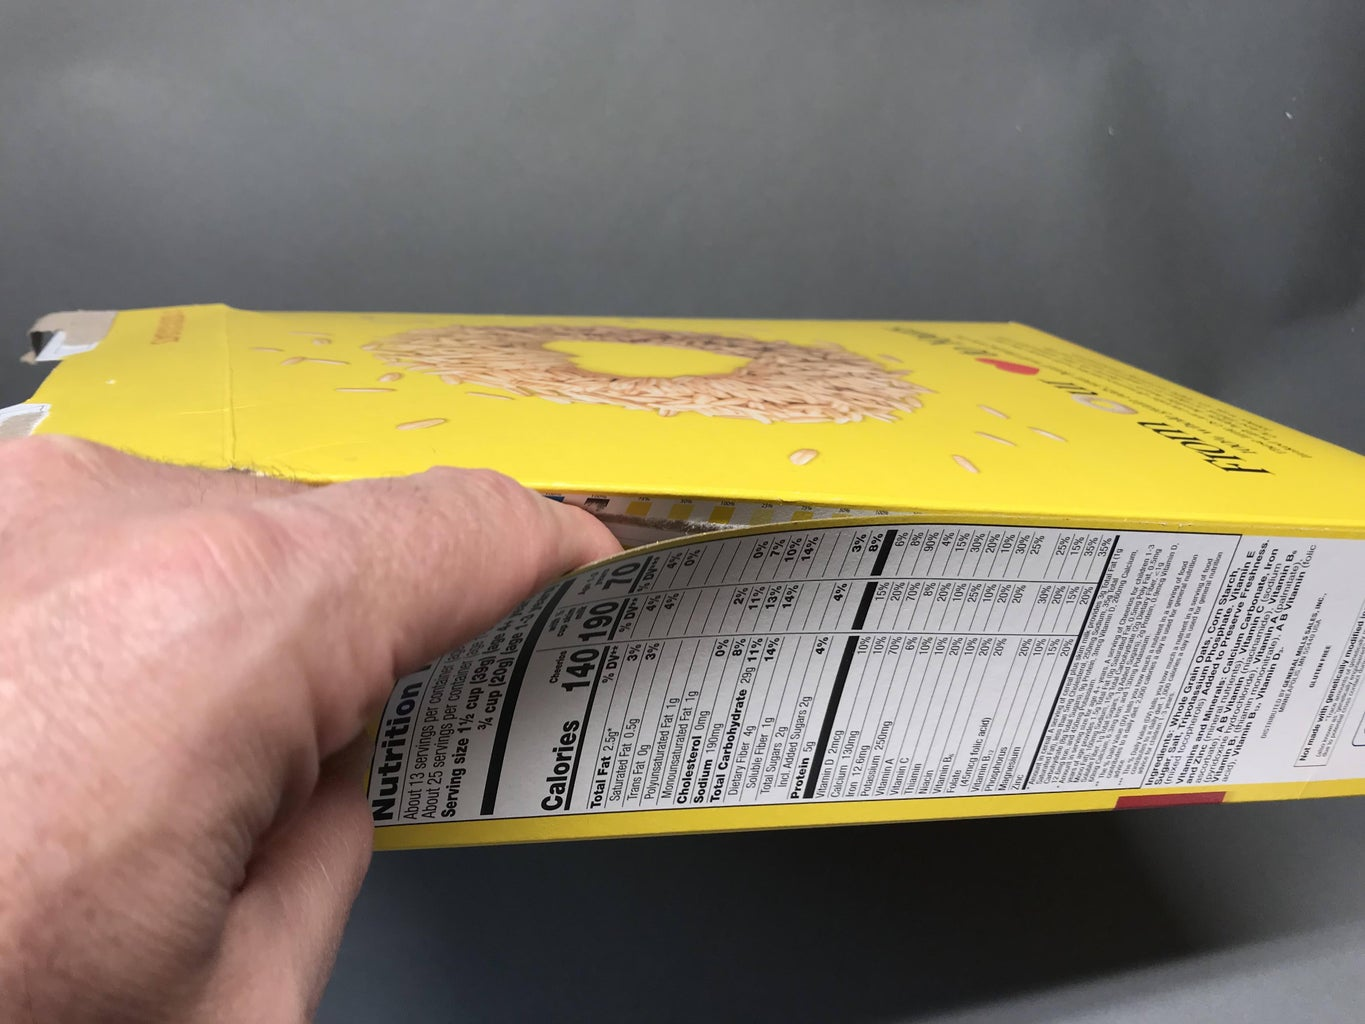 Cut Up the Cereal Box